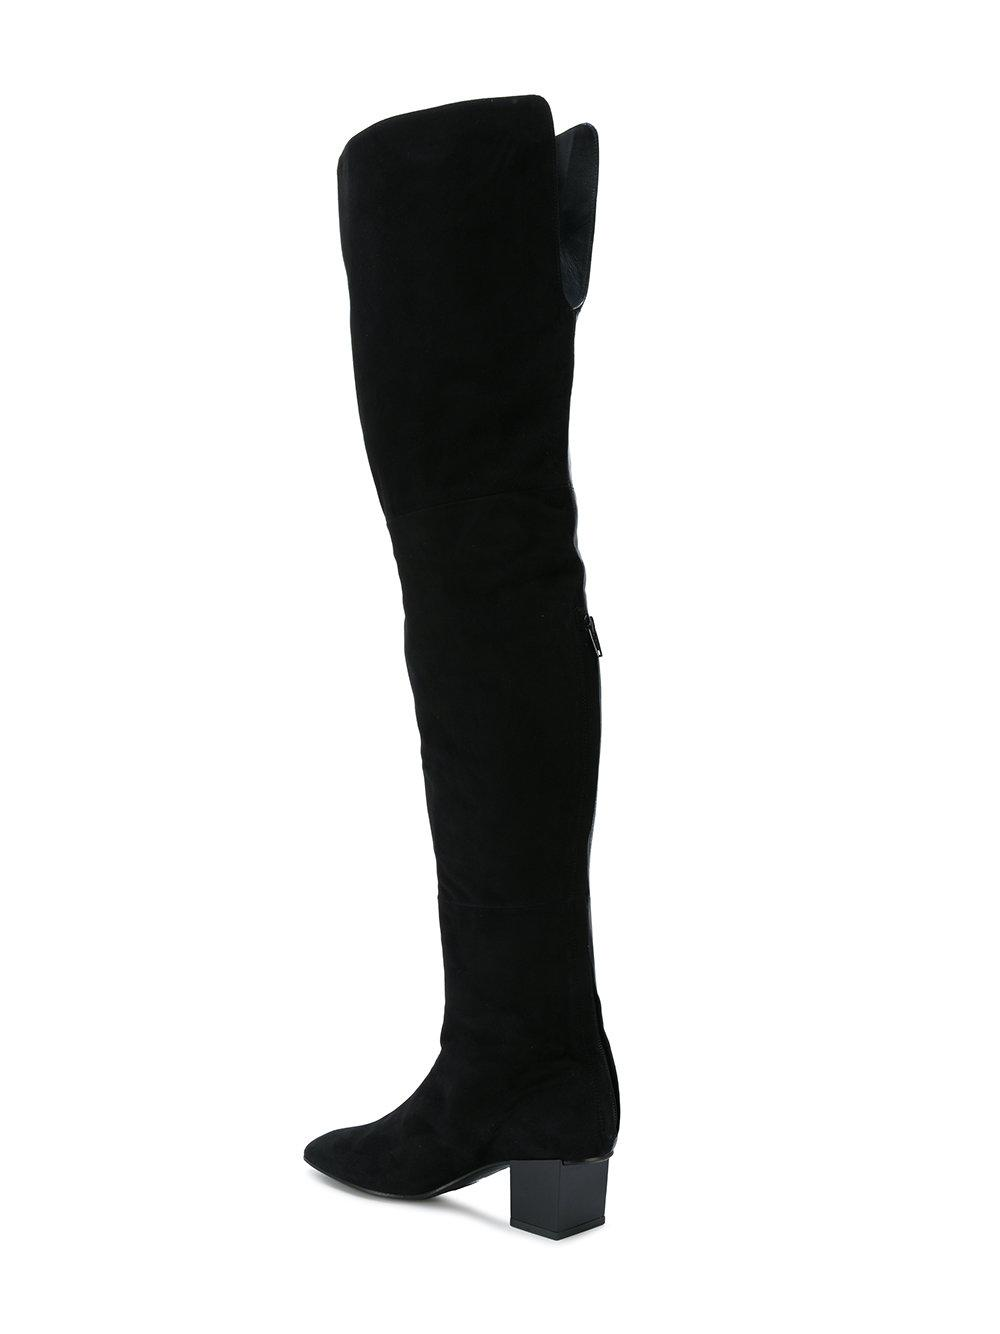 MARC ELLIS Thigh high boots zkaIYHtwW